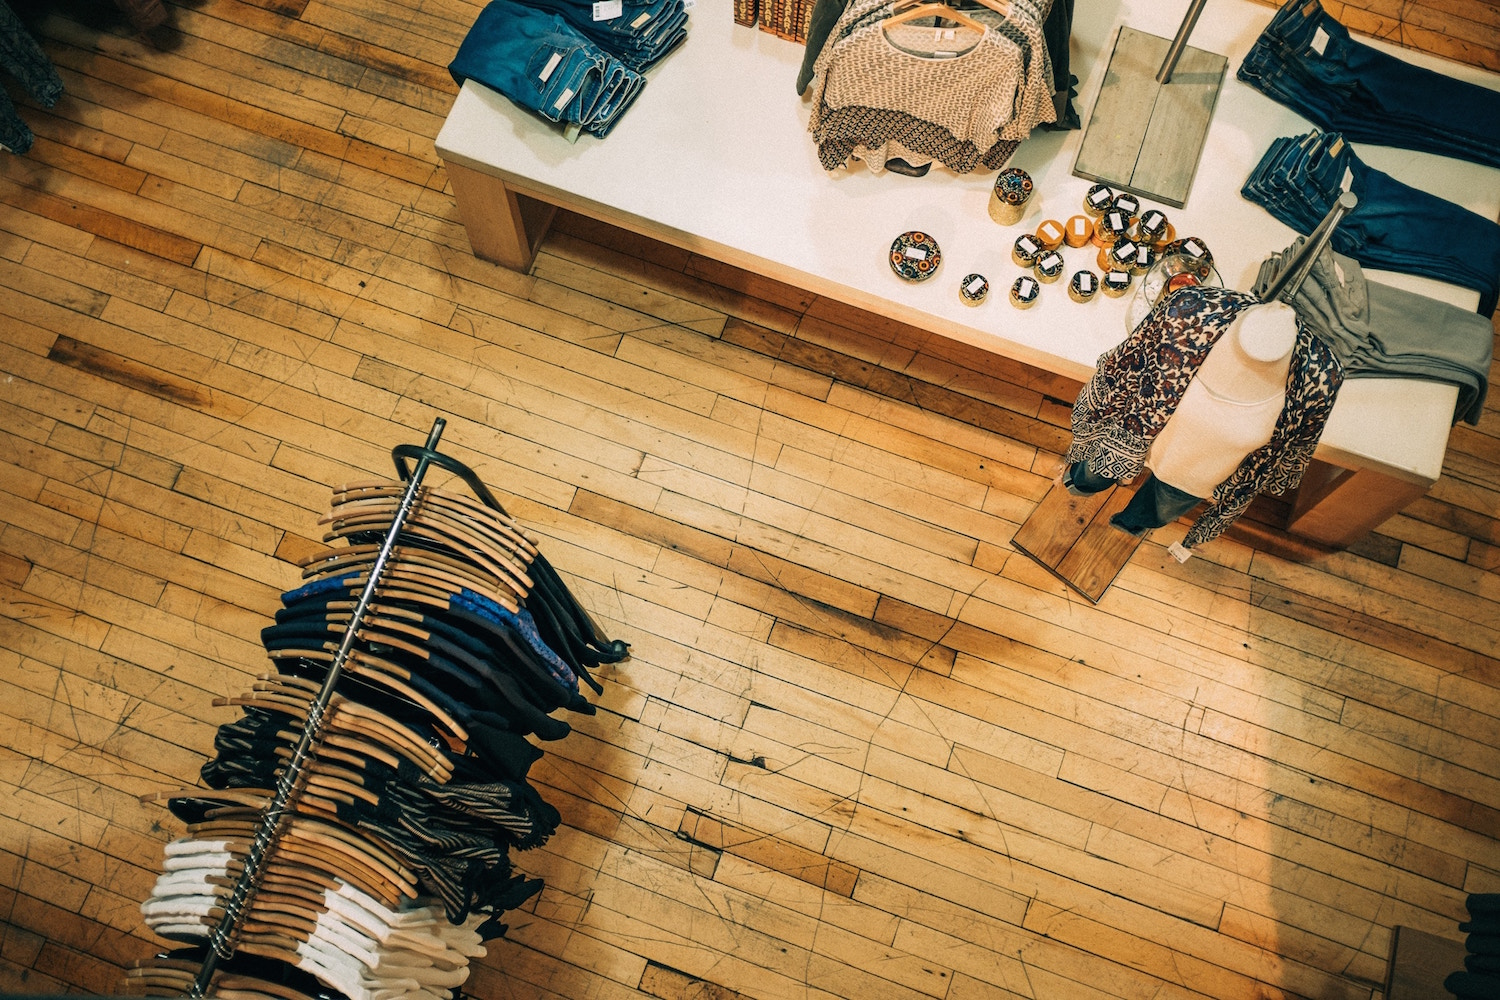 Digital-First Brands Go Brick And Mortar - YFS Magazine